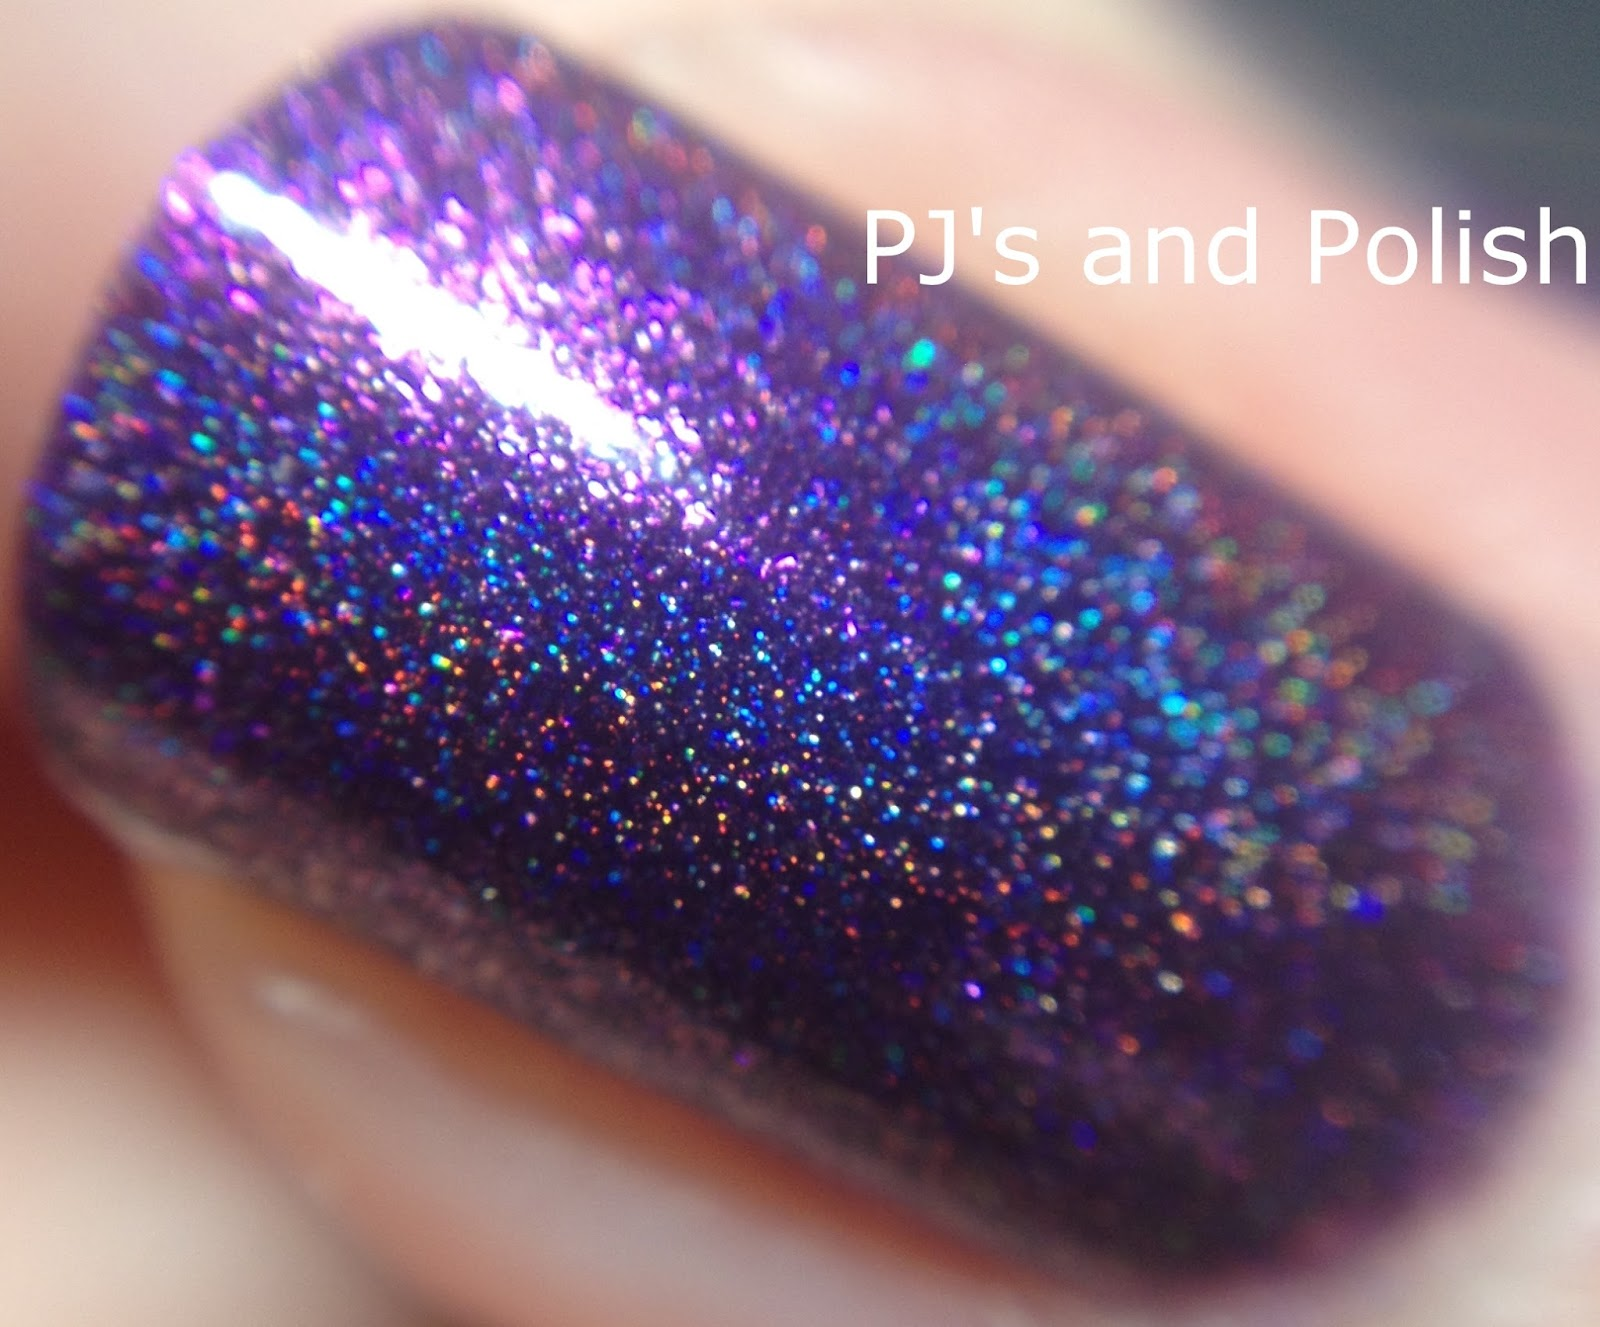 Swatch & Review LilypadLacquer Vixens Wear Violet HK Girl